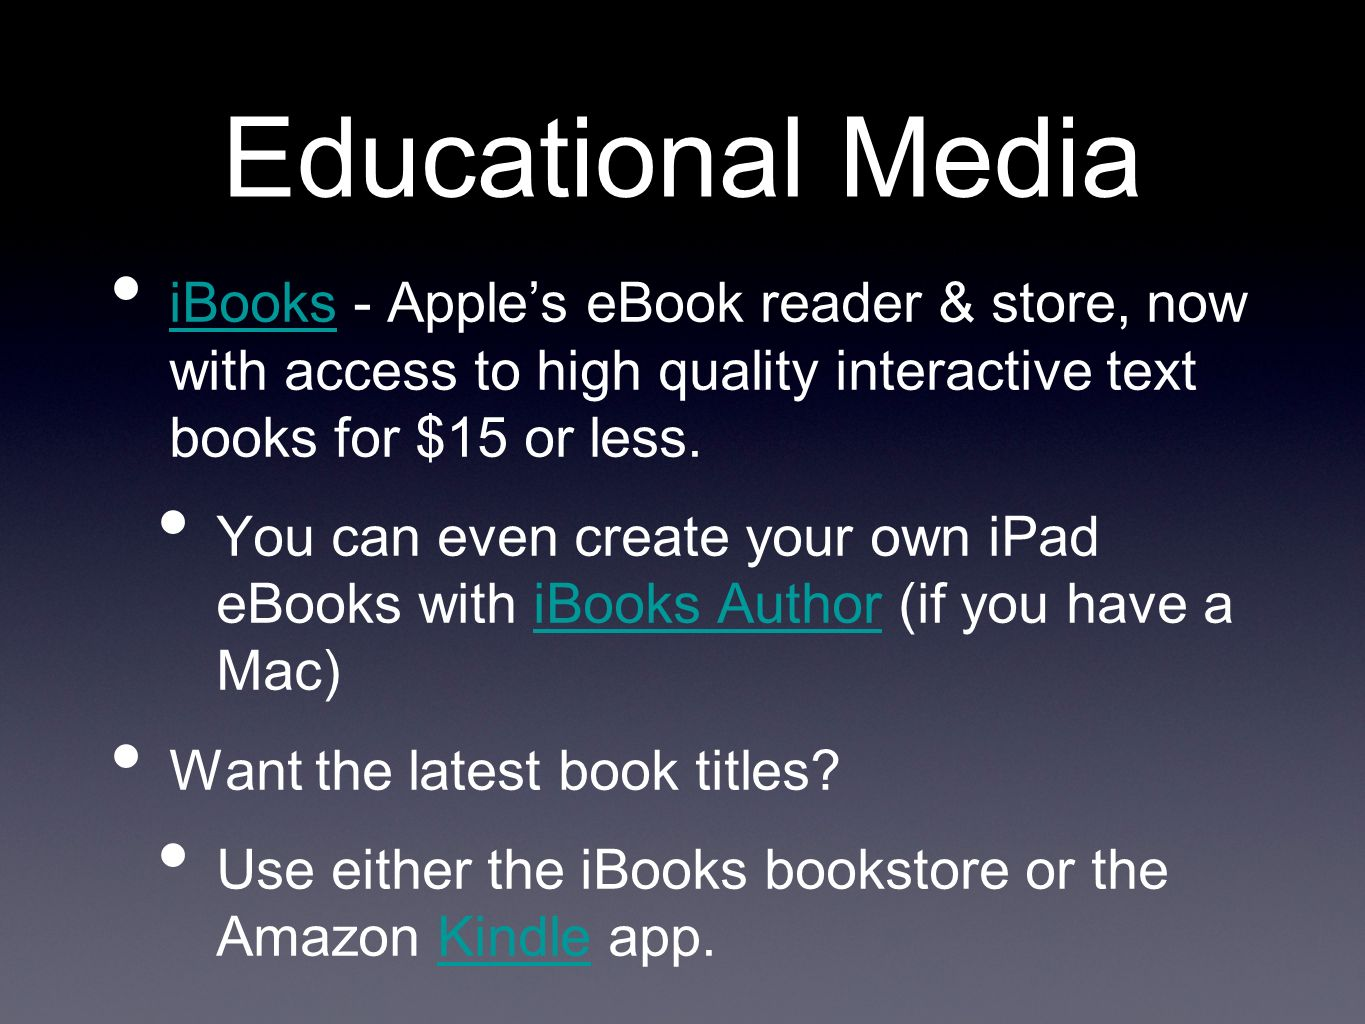 Educational Media iBooks - Apples eBook reader & store, now with access to high quality interactive text books for $15 or less.